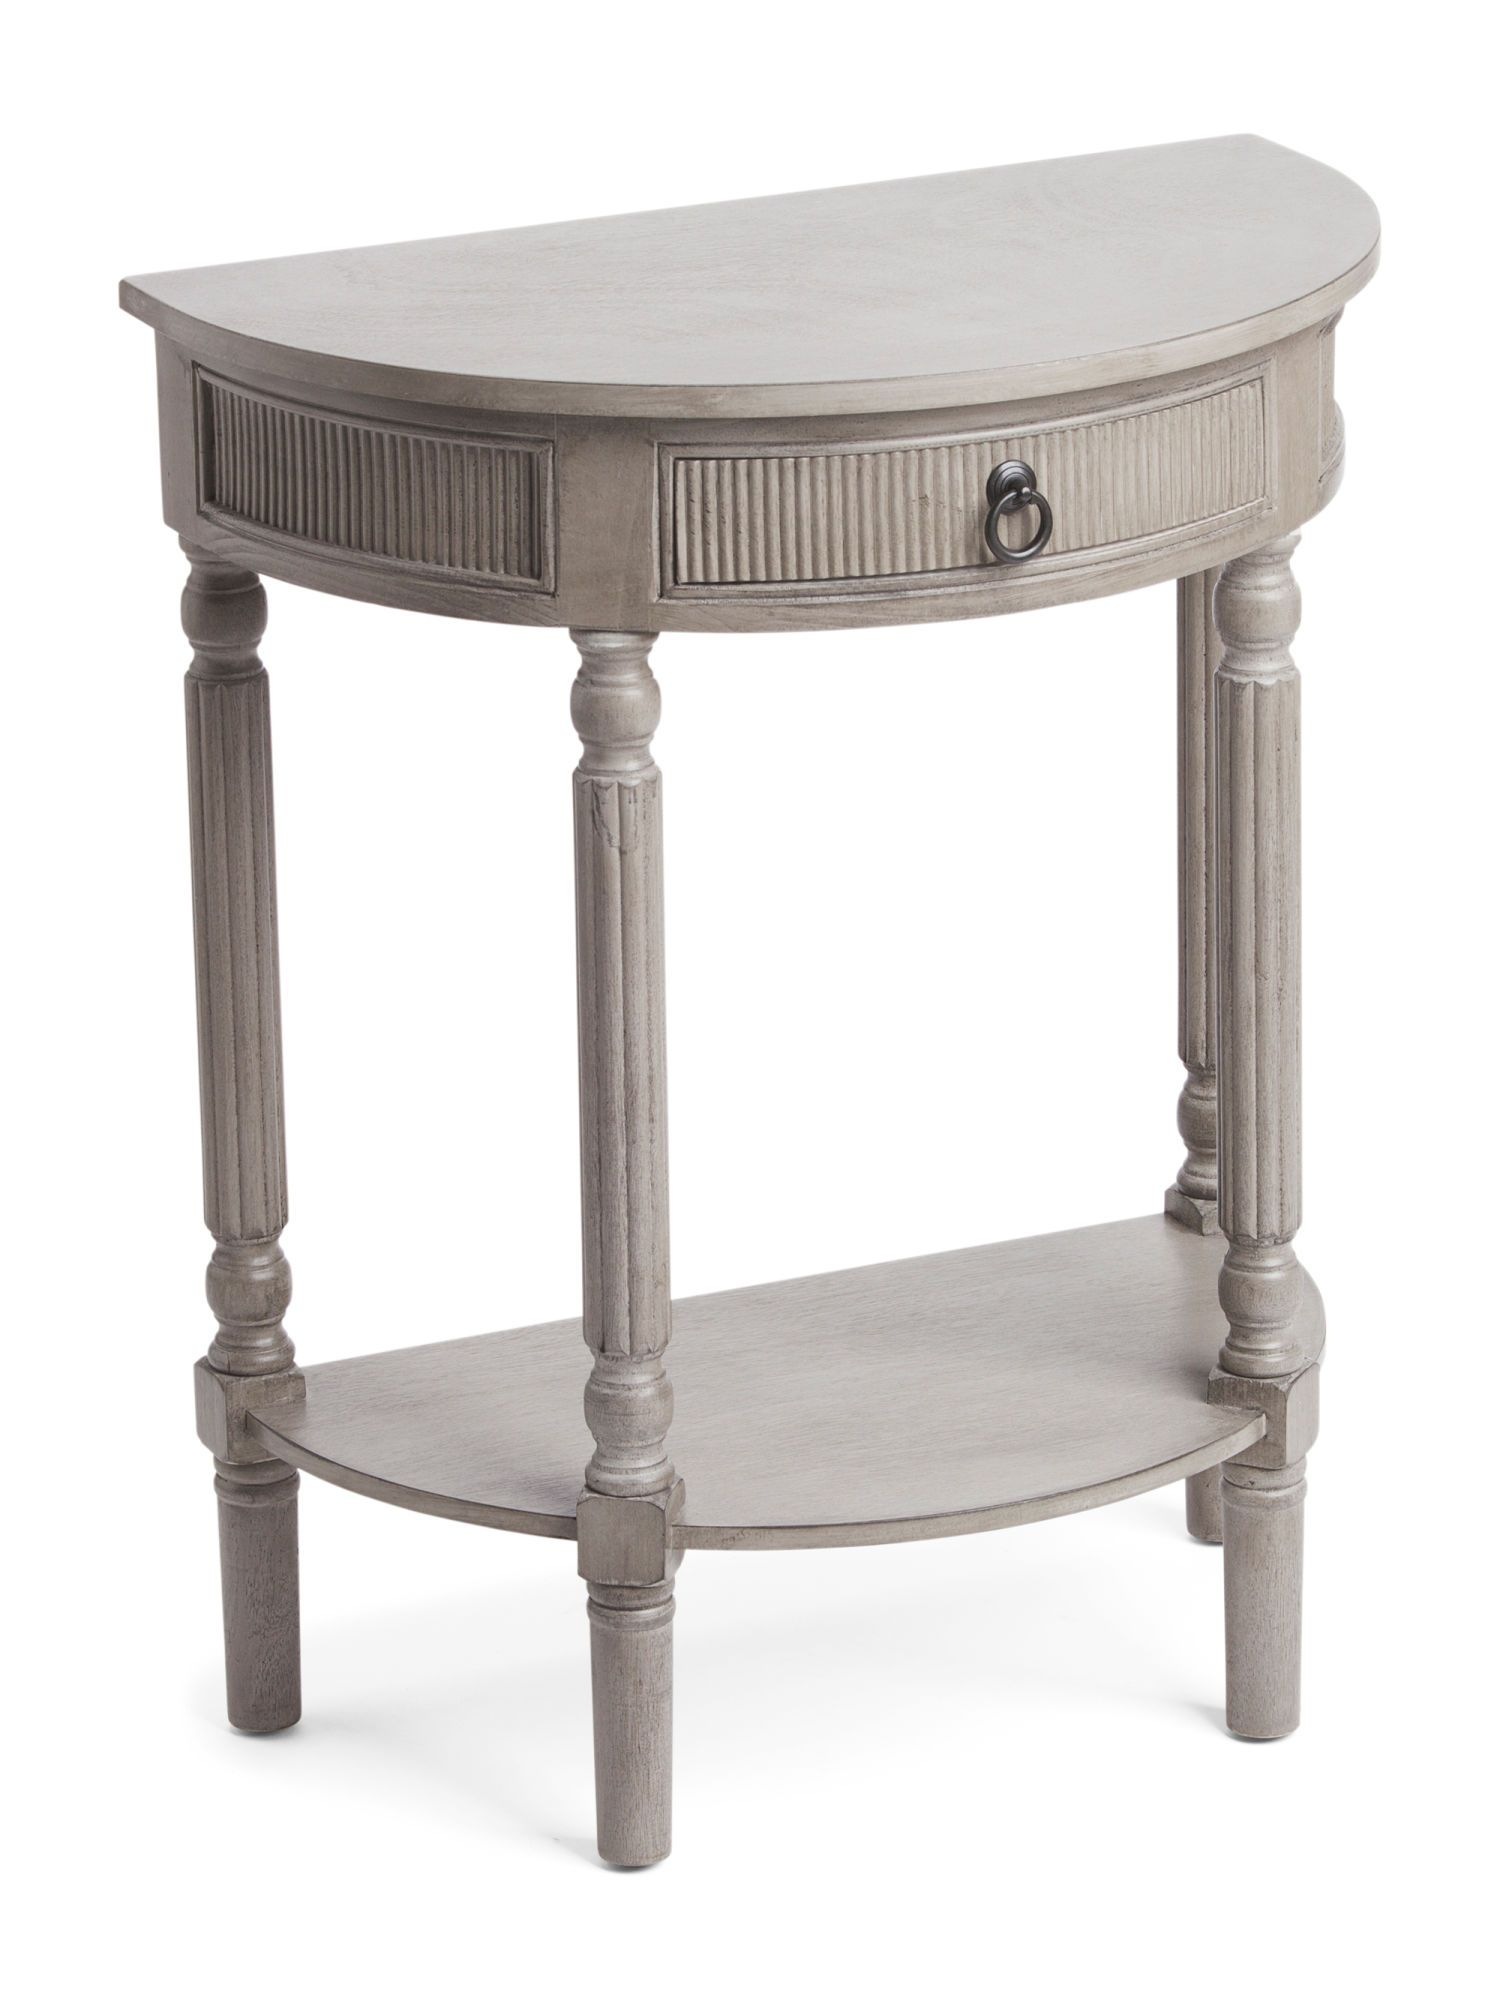 Privilege Half Round Table With Drawer In Stone 80 Tj Ma